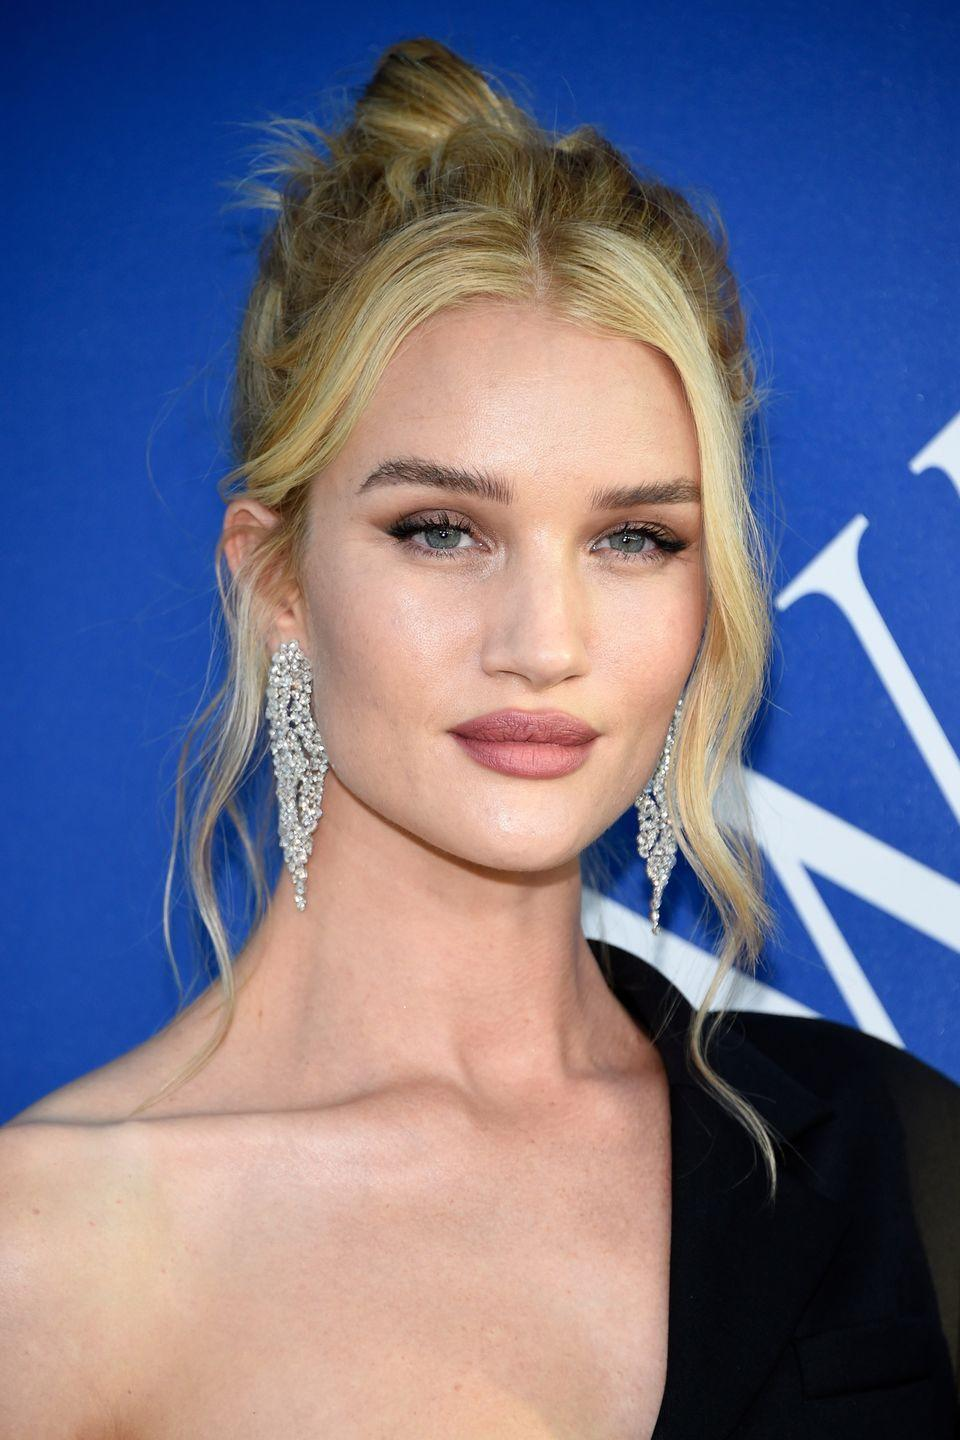 <p>Rosie Huntington-Whiteley often throws her long hair up into a messy high bun, which accentuates her bone structure. To stop it looking too severe, follow her example and leave two tendrils out.</p>